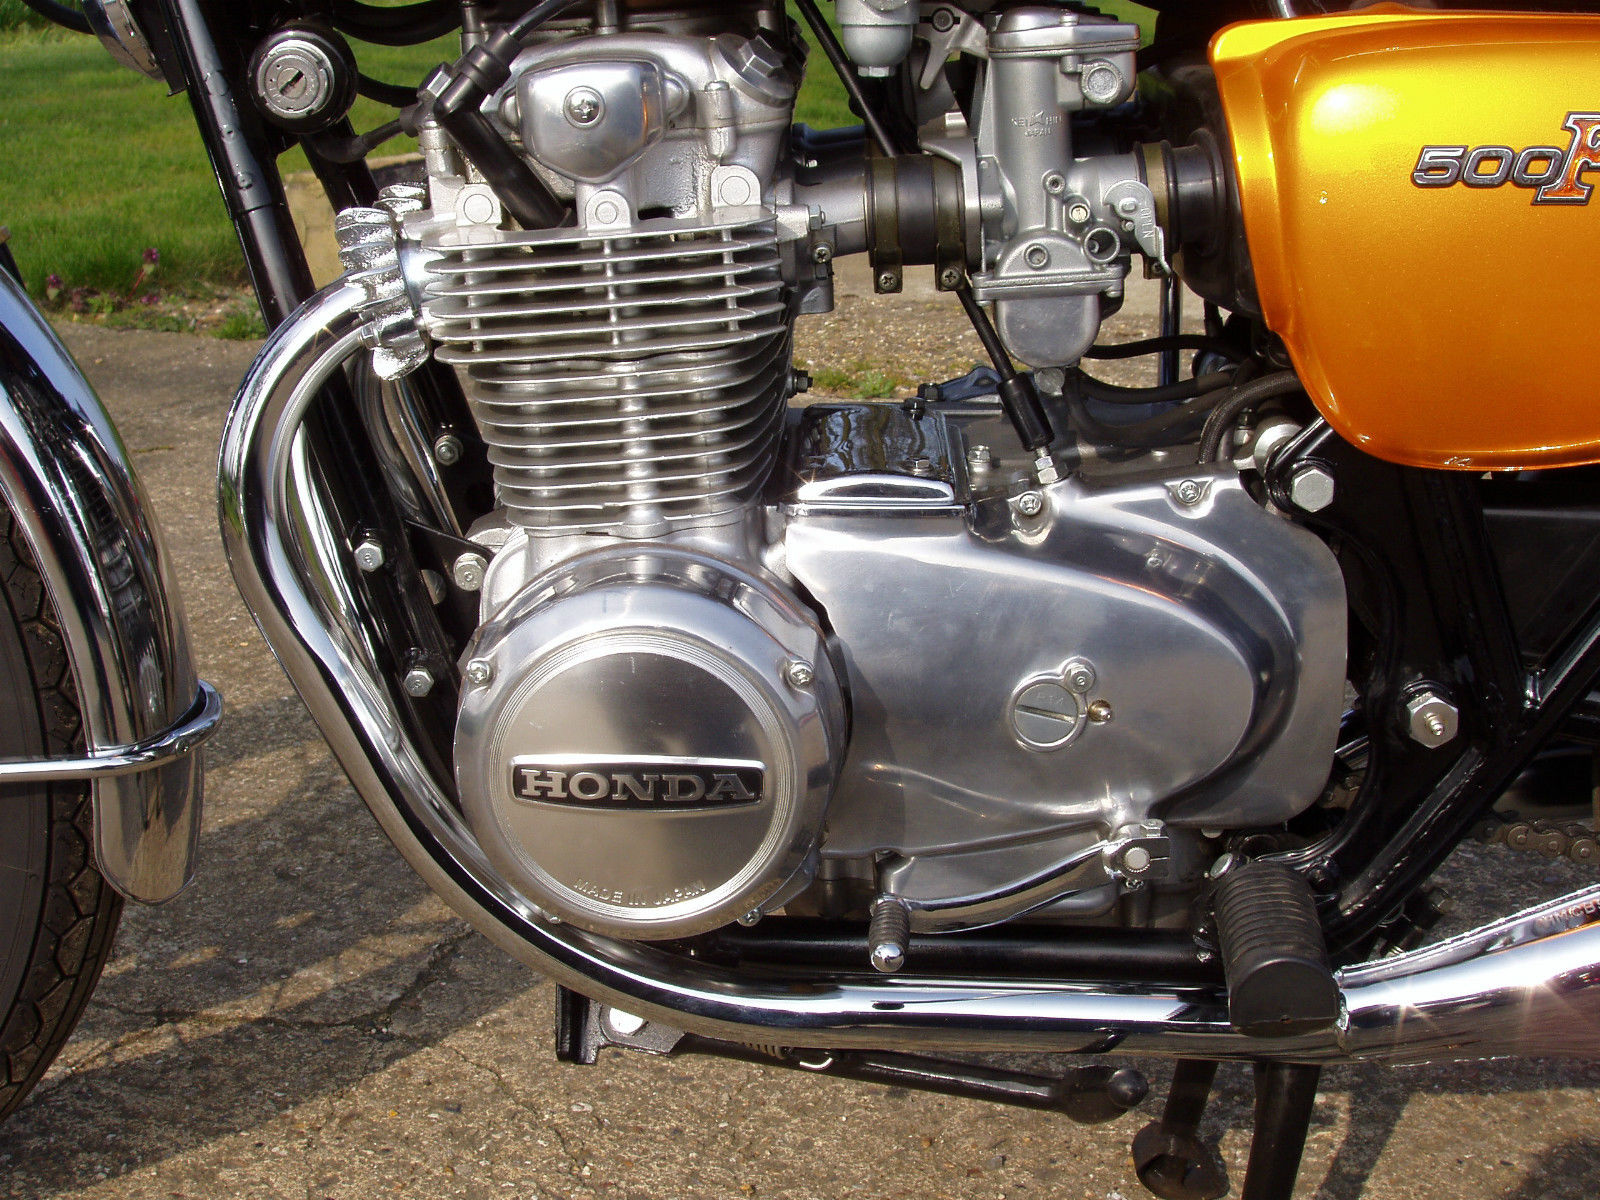 Honda CB500 Four - 1971 - Motor and Transmission, Chain Cover, Alternator, Ignition Switch and Frame.